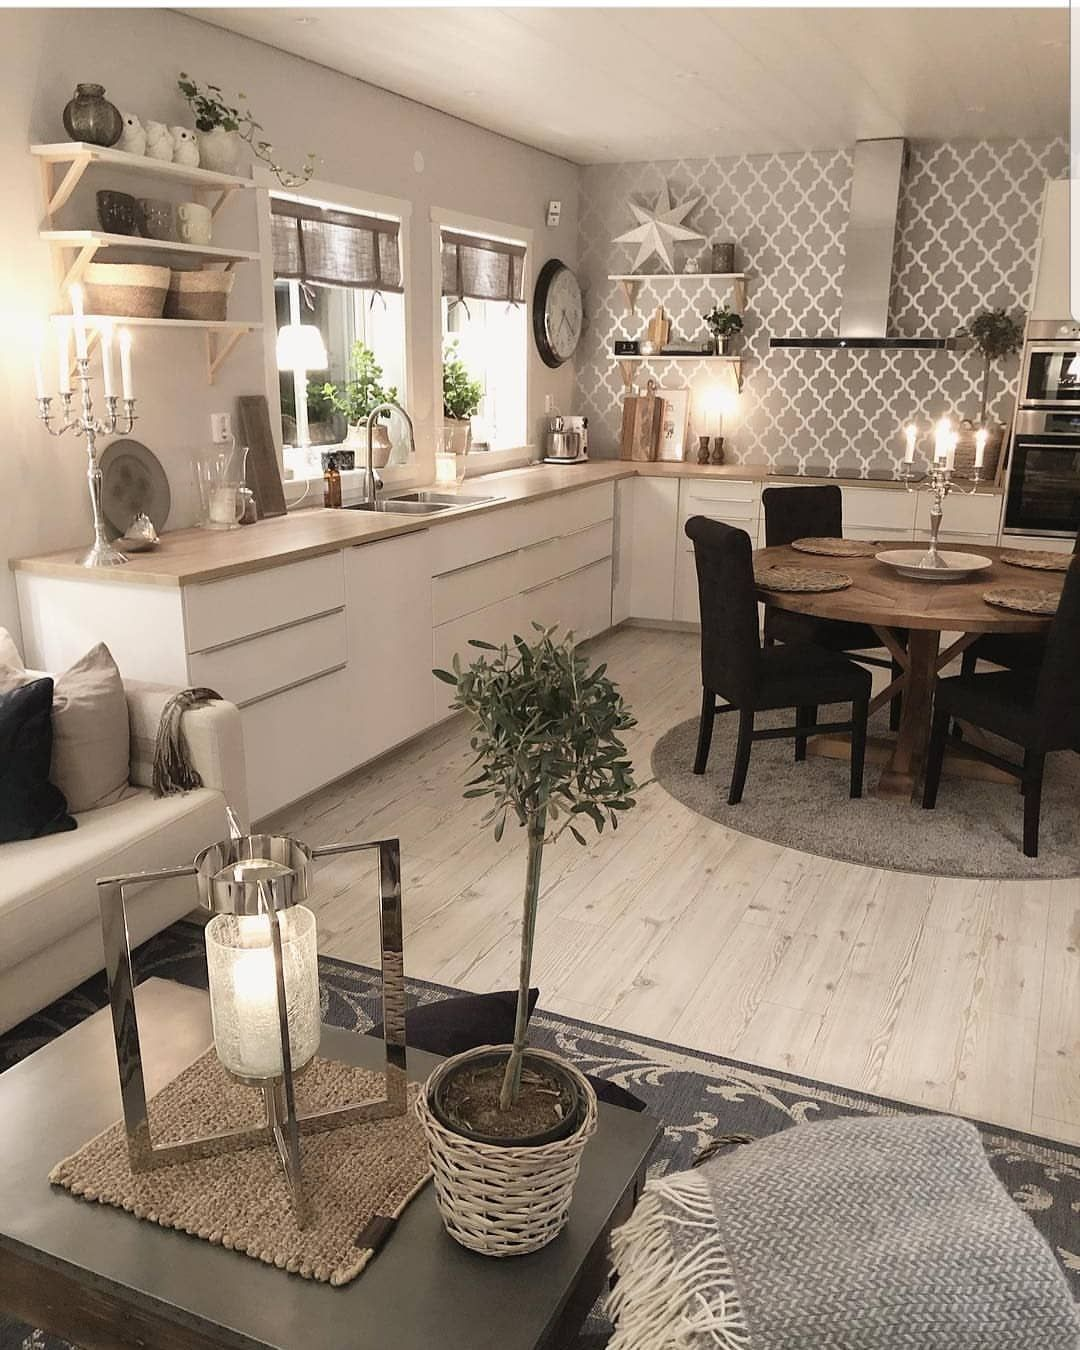 Inspire Me Home Decor Living Room: Credit @homebymarlene #kitchendesign #kitchen #inspire_me